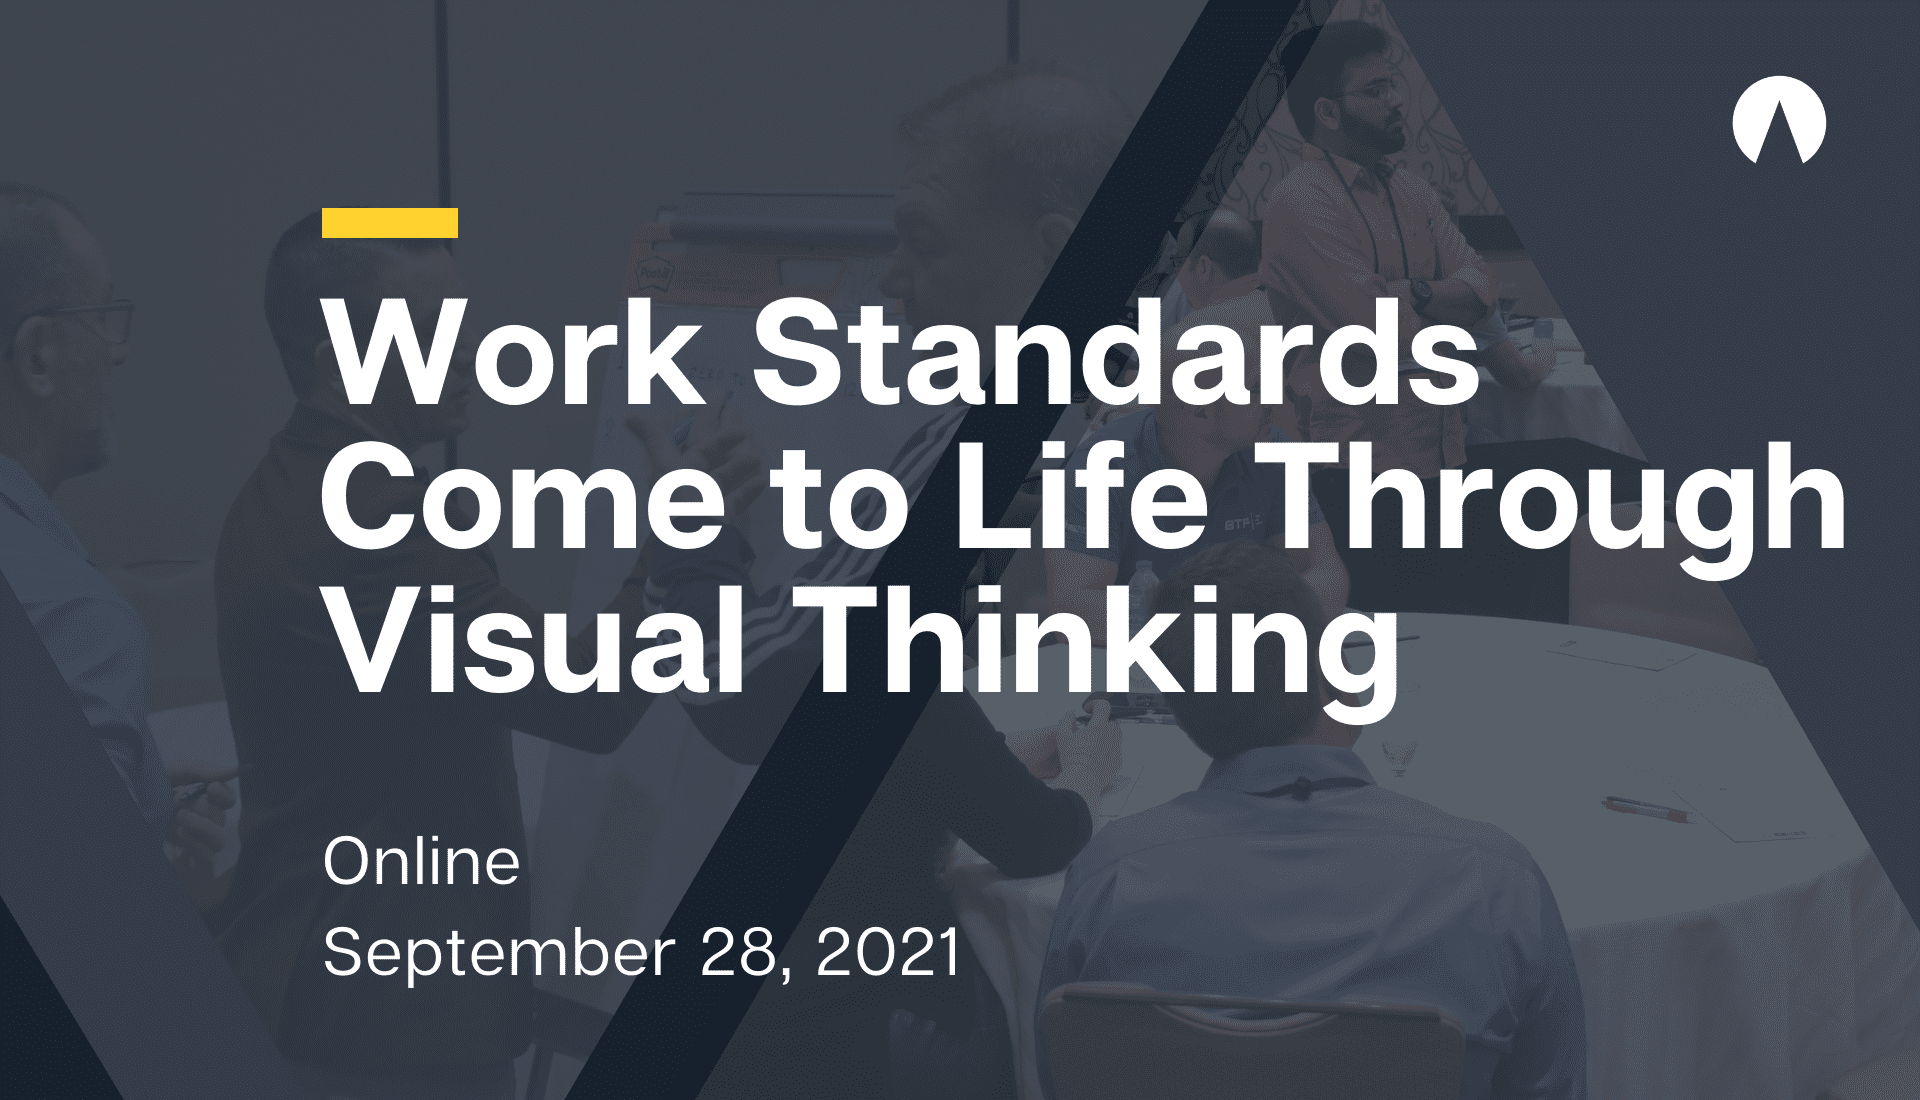 Work Standards Come to Life Through Visual Thinking